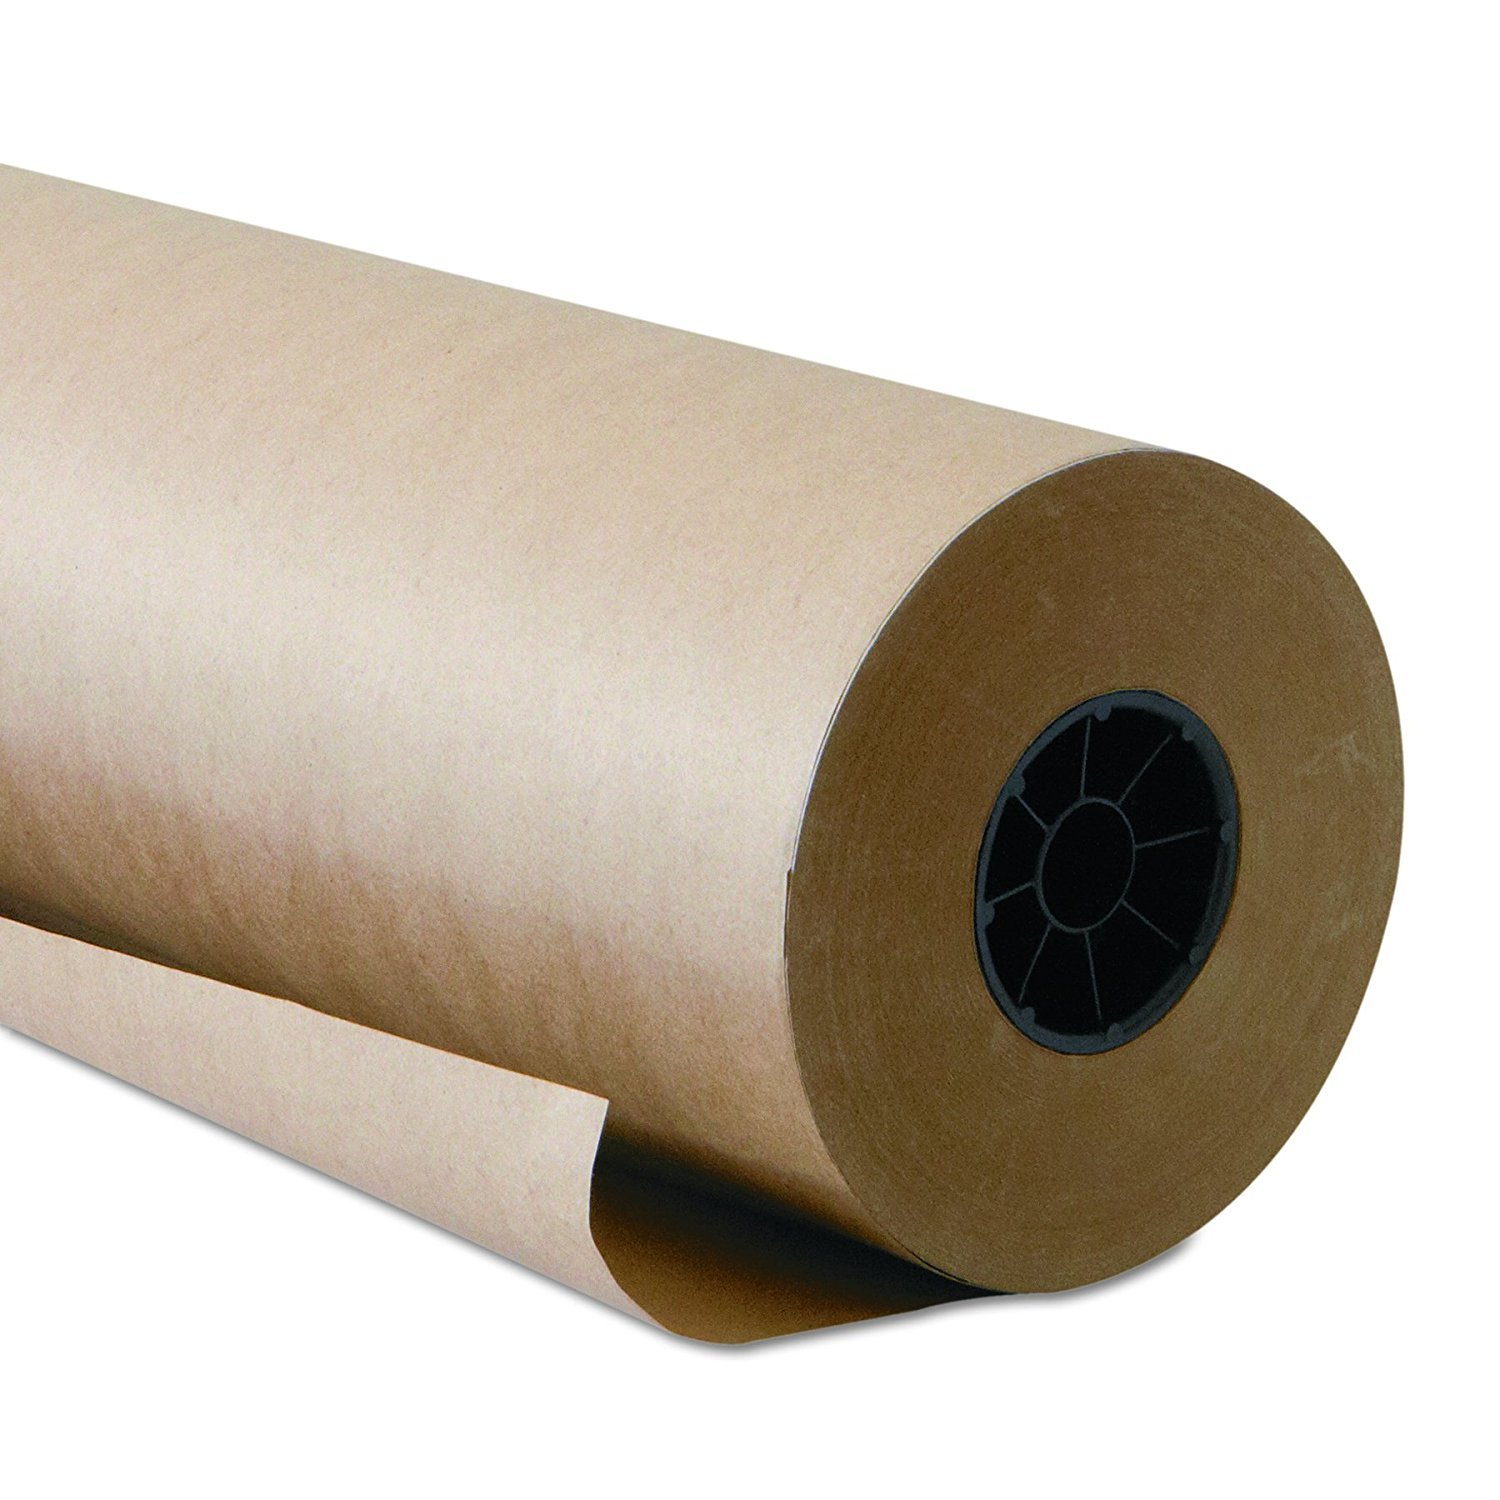 Brown Kraft Paper Roll 48 x 2400 Inches (200 Feet Long) Single Roll -100% Recycled Materials - Wrapping, Bulletin Boards, Table Top Cover for Arts & Craft, Work Bench by Woodpeckers